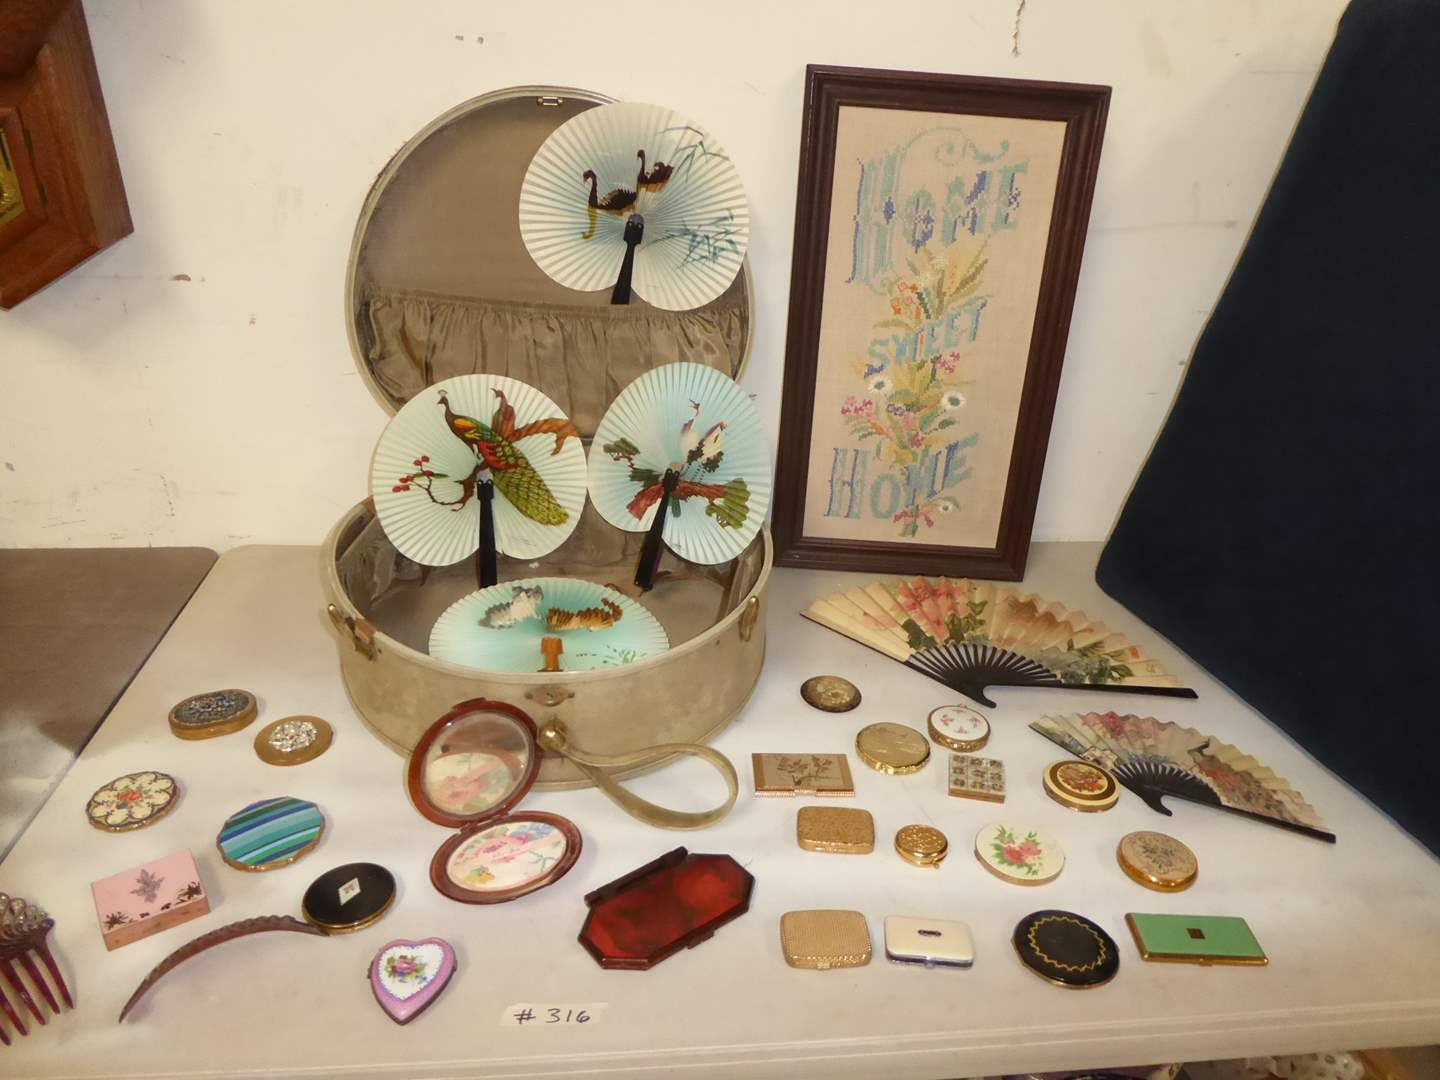 Lot # 316 - Small Vintage Suitcase, Paper Fans & Compacts   (main image)